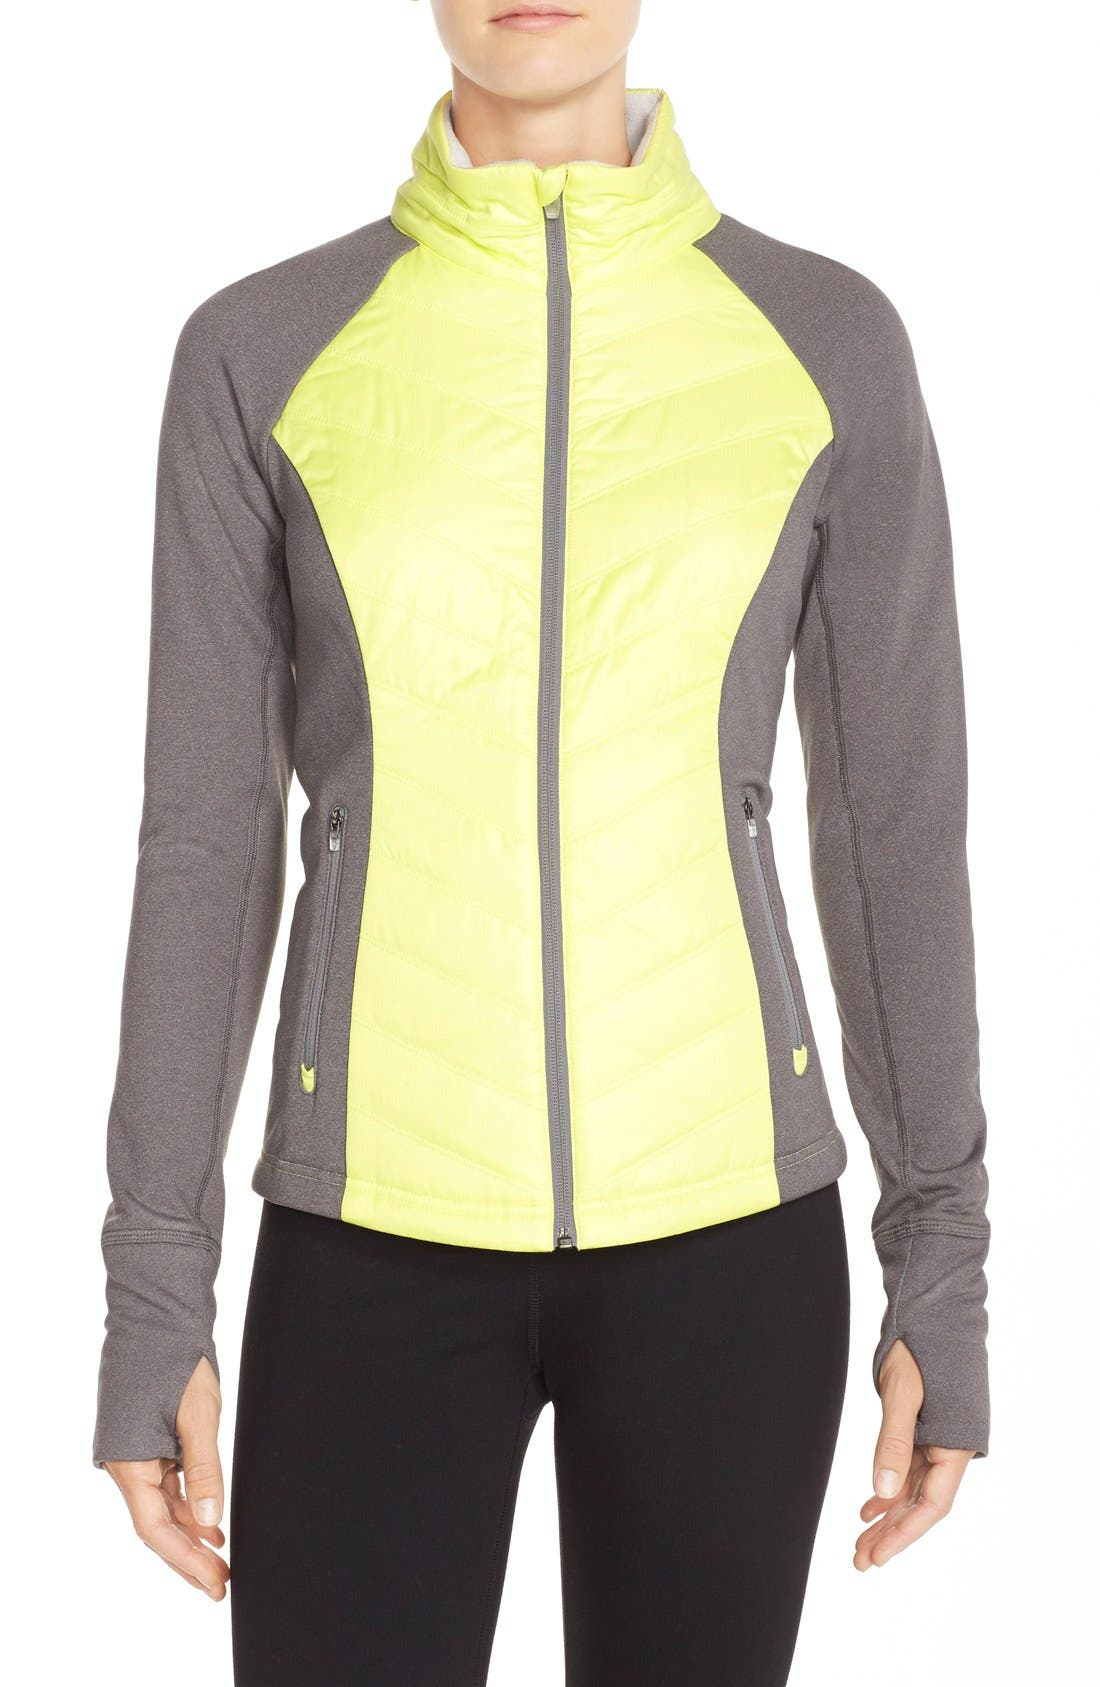 Zelfusion Reflective Quilted Jacket,                             Main thumbnail 9, color,